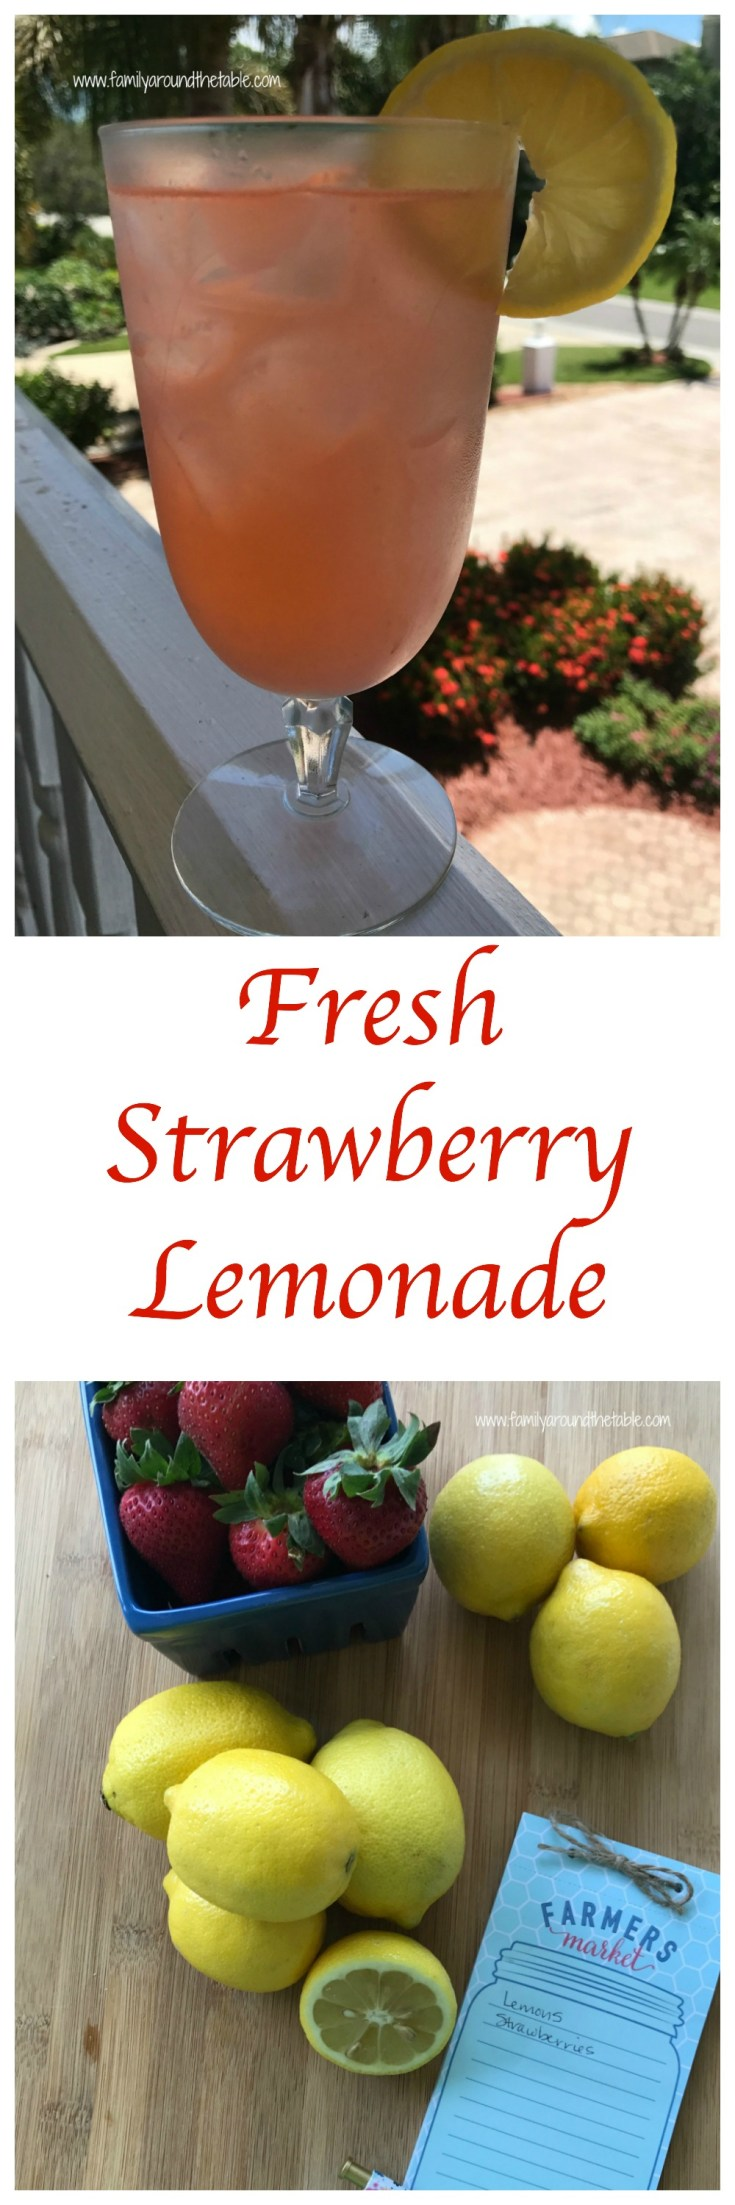 A pitcher of fresh strawberry lemonade is perfect for summer picnics or poolside sipping.